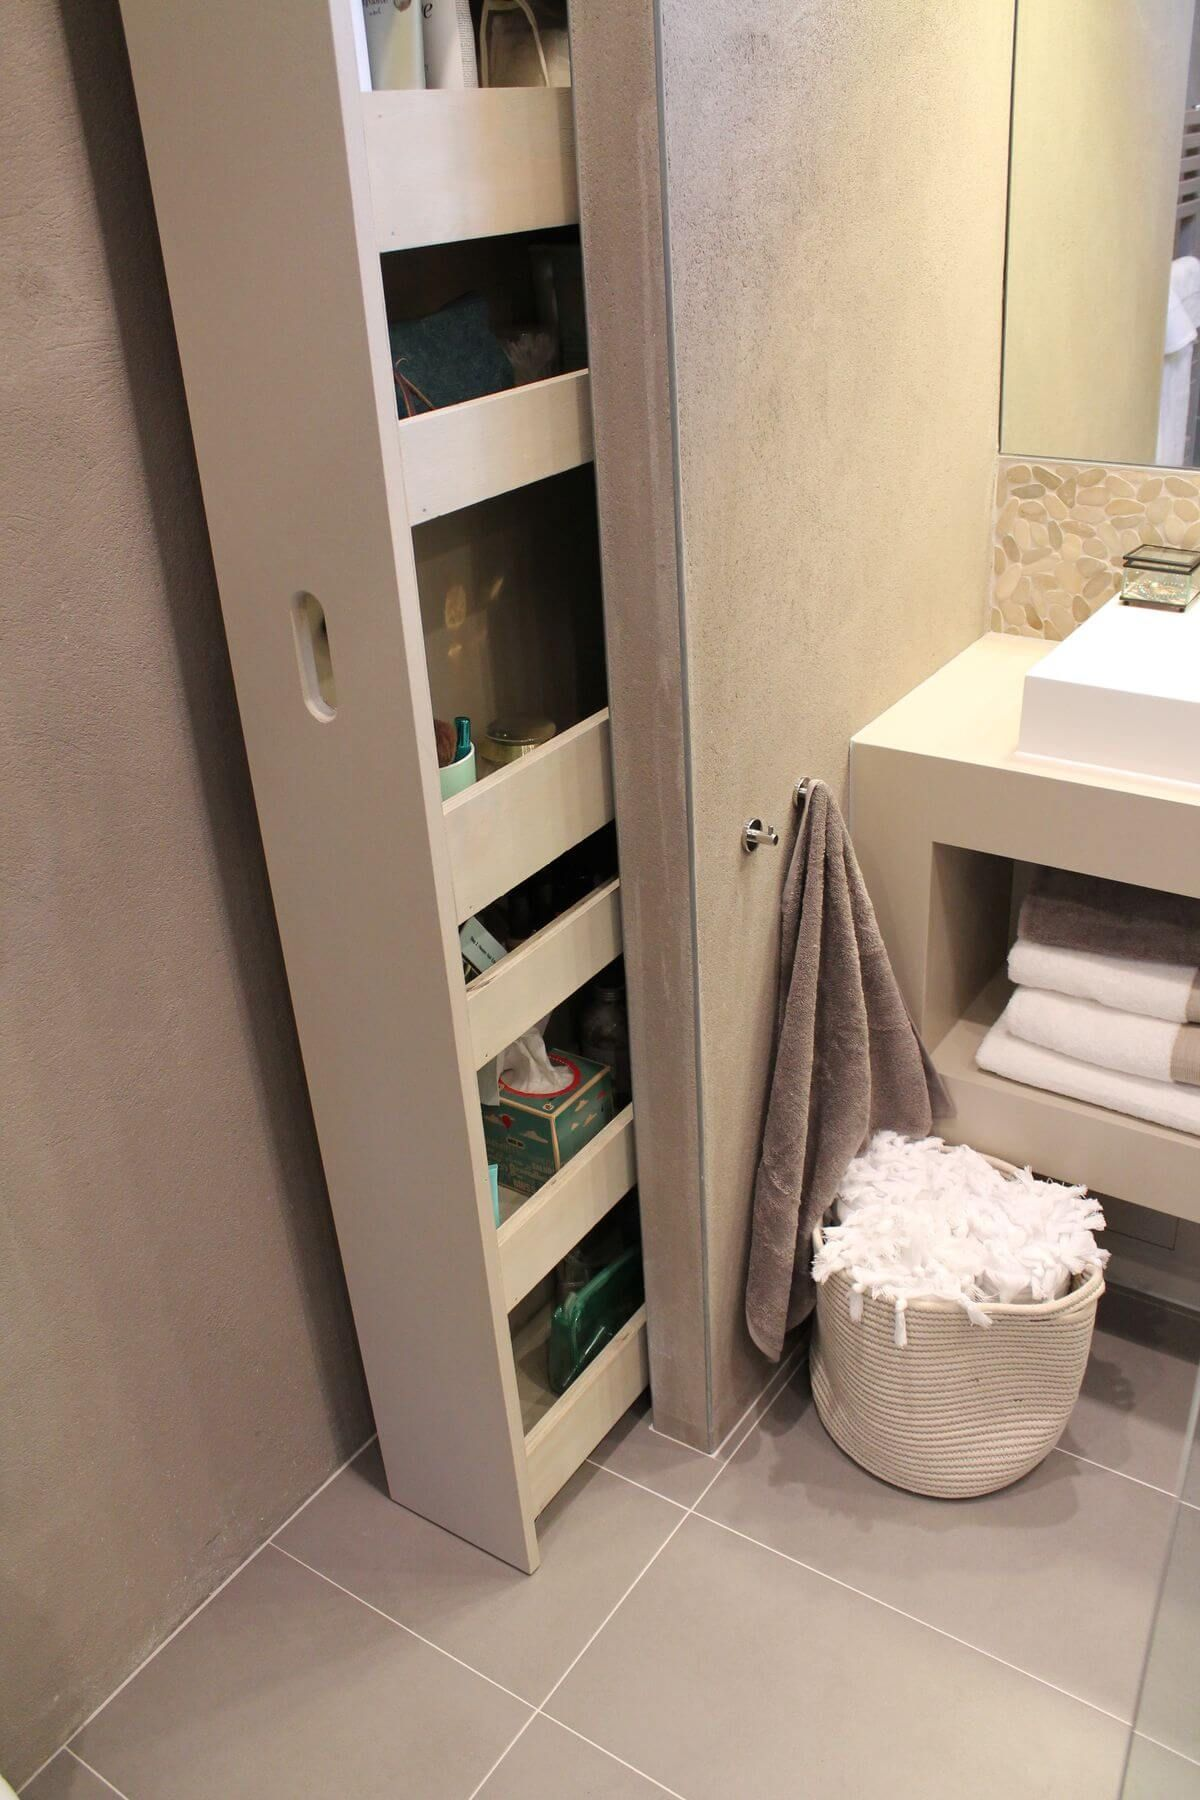 Merveilleux Sliding Storage Space For Stowing Bathroom Necessities